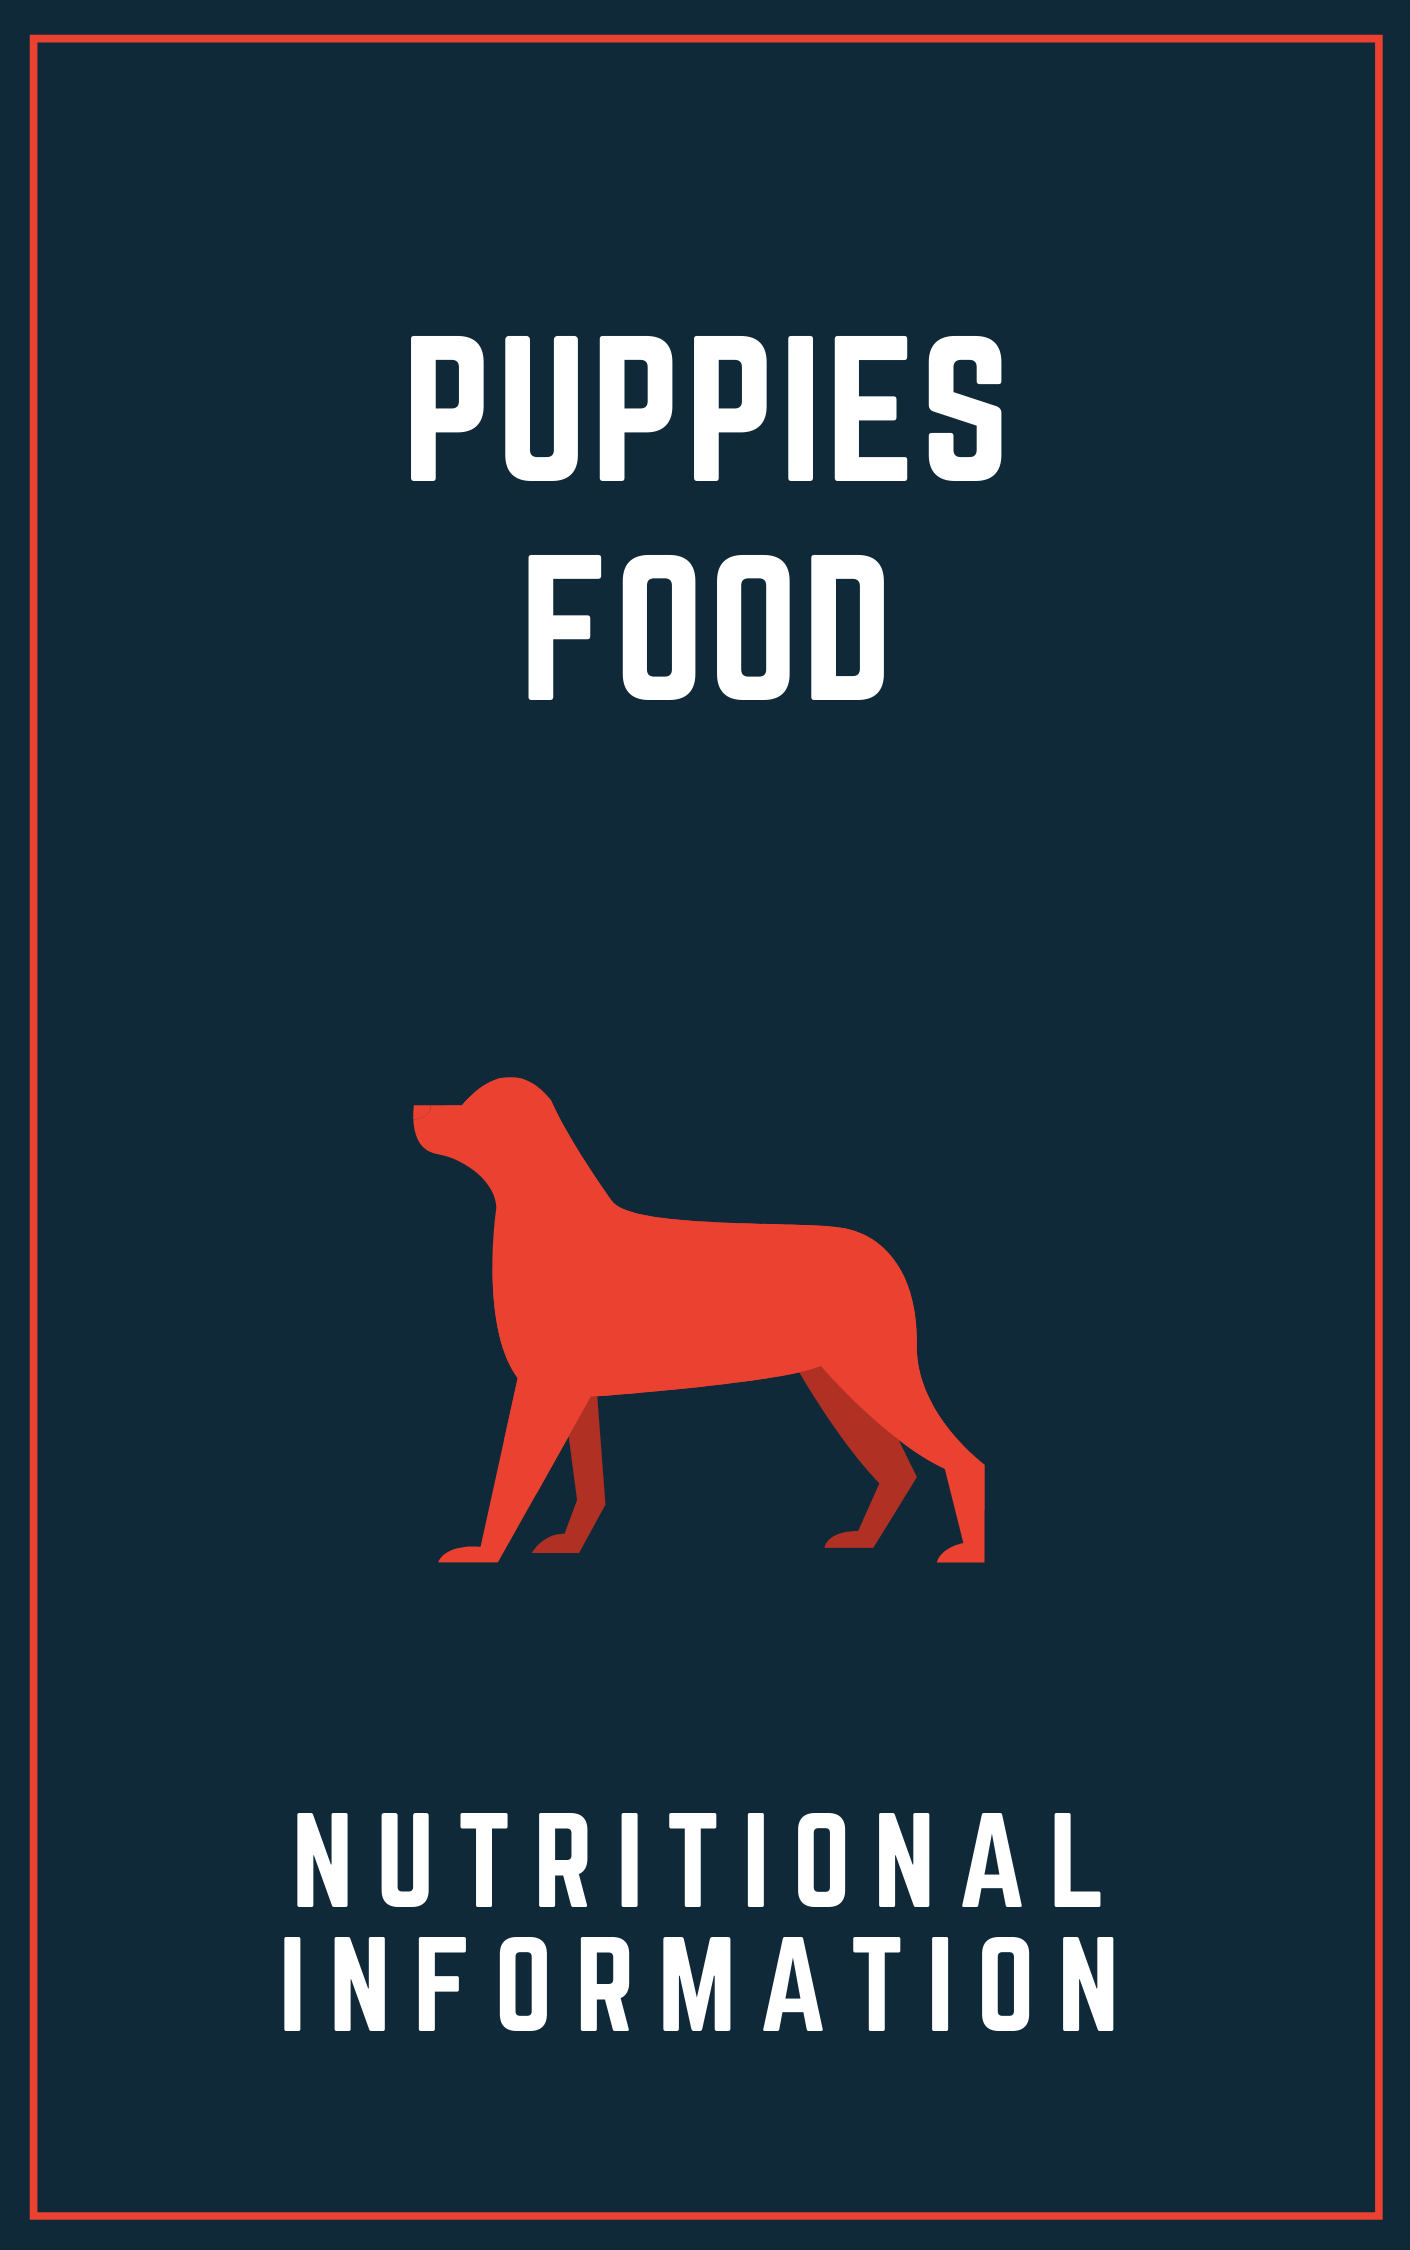 Proper nutrition is very important for new puppies